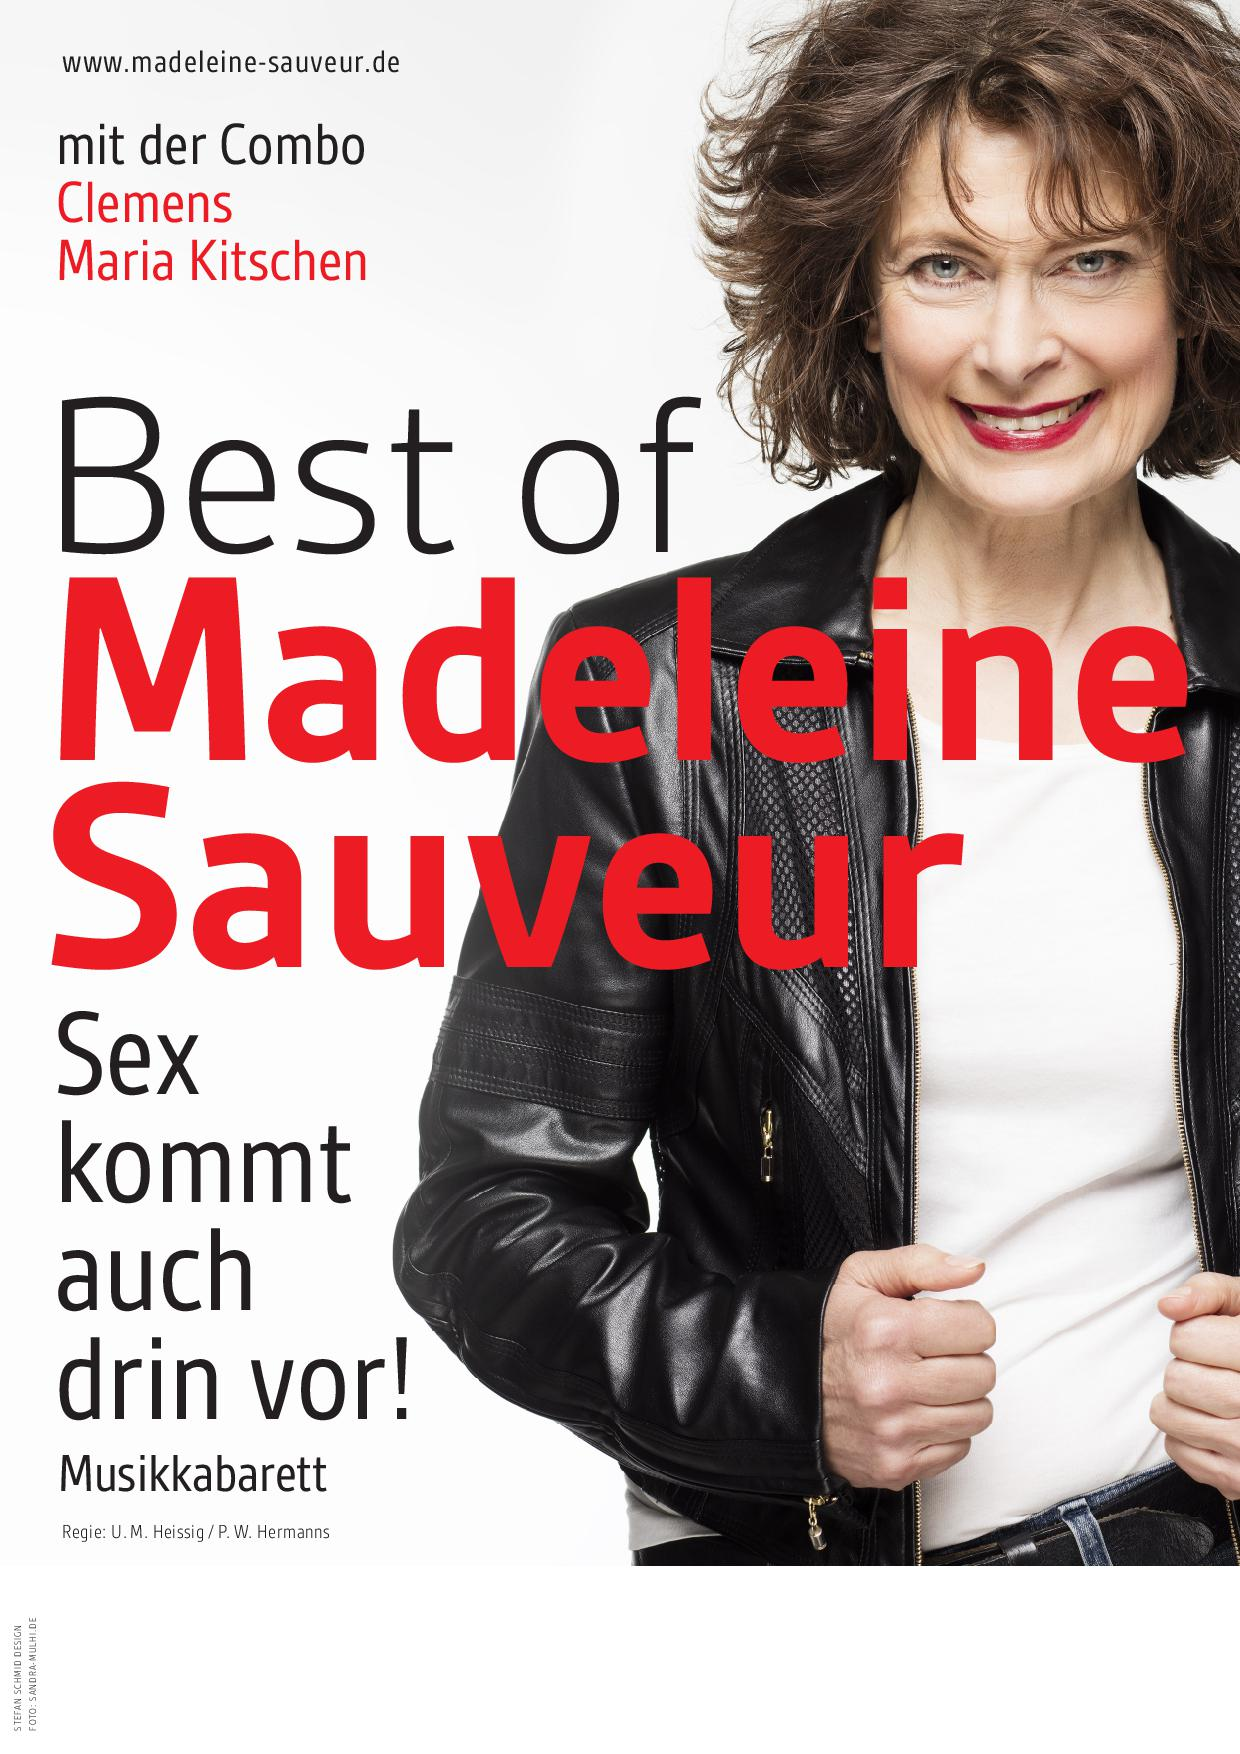 Madeleine Sauveur - Best of